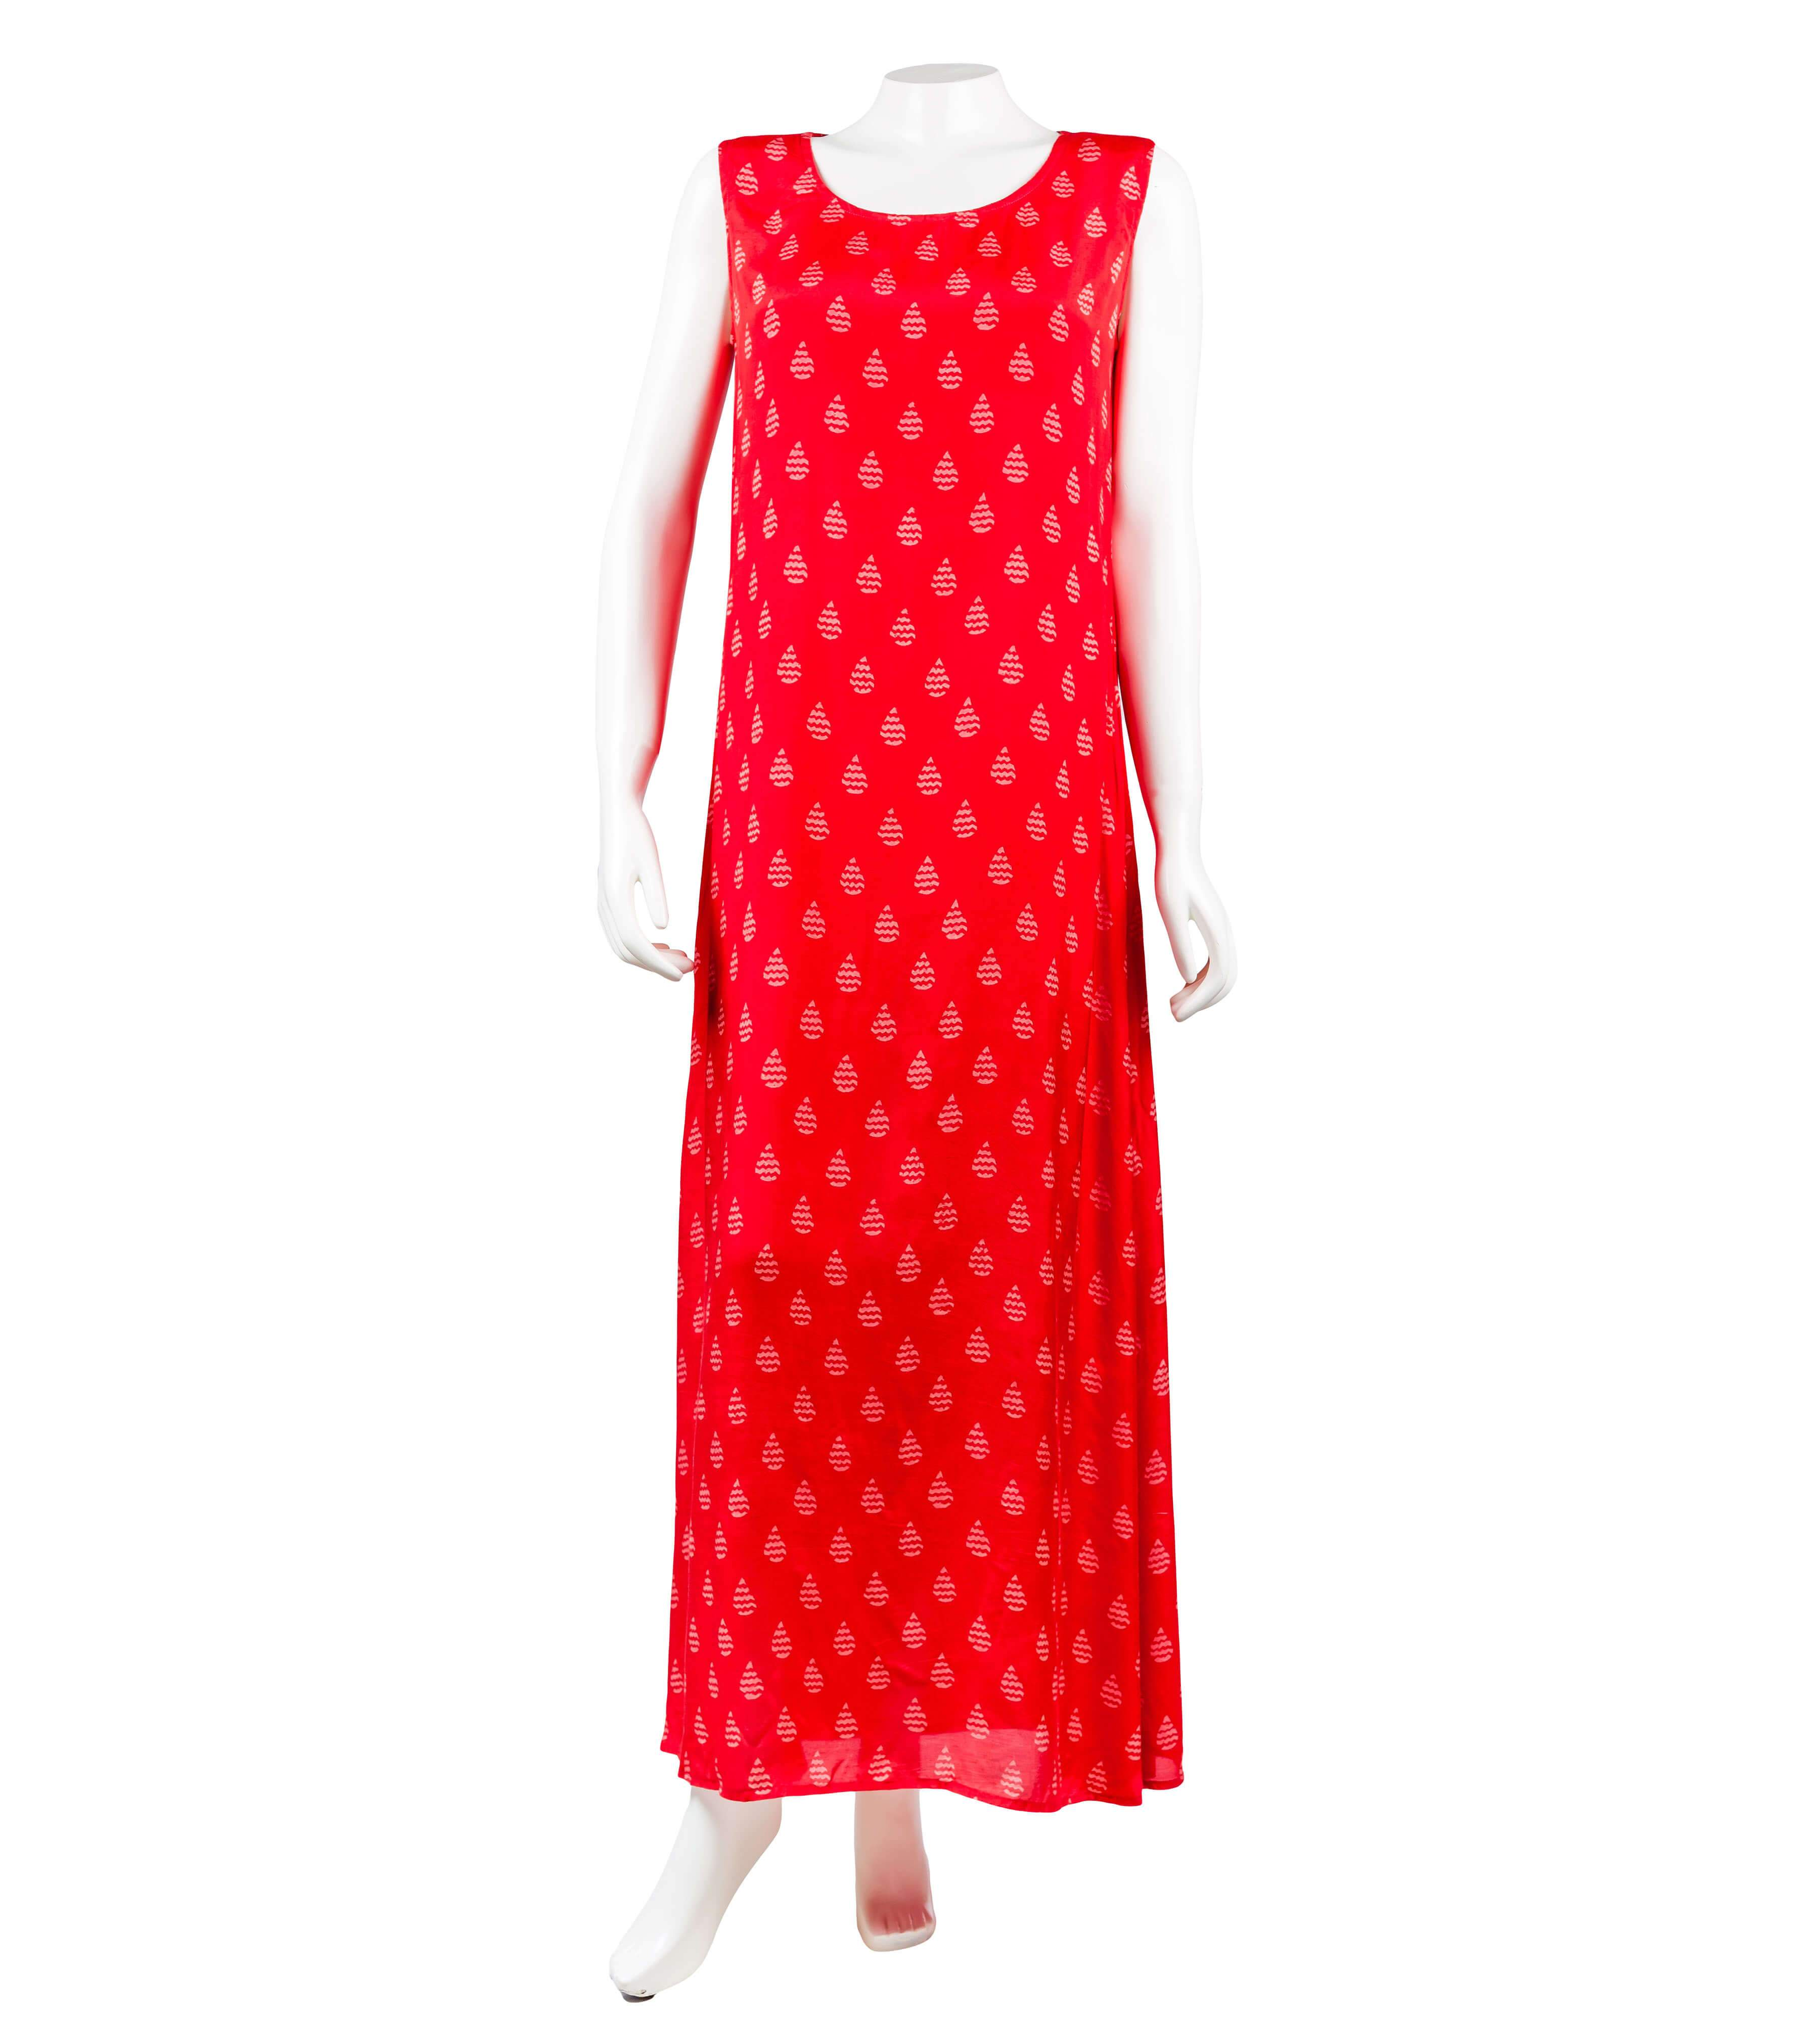 wholesale dress online india